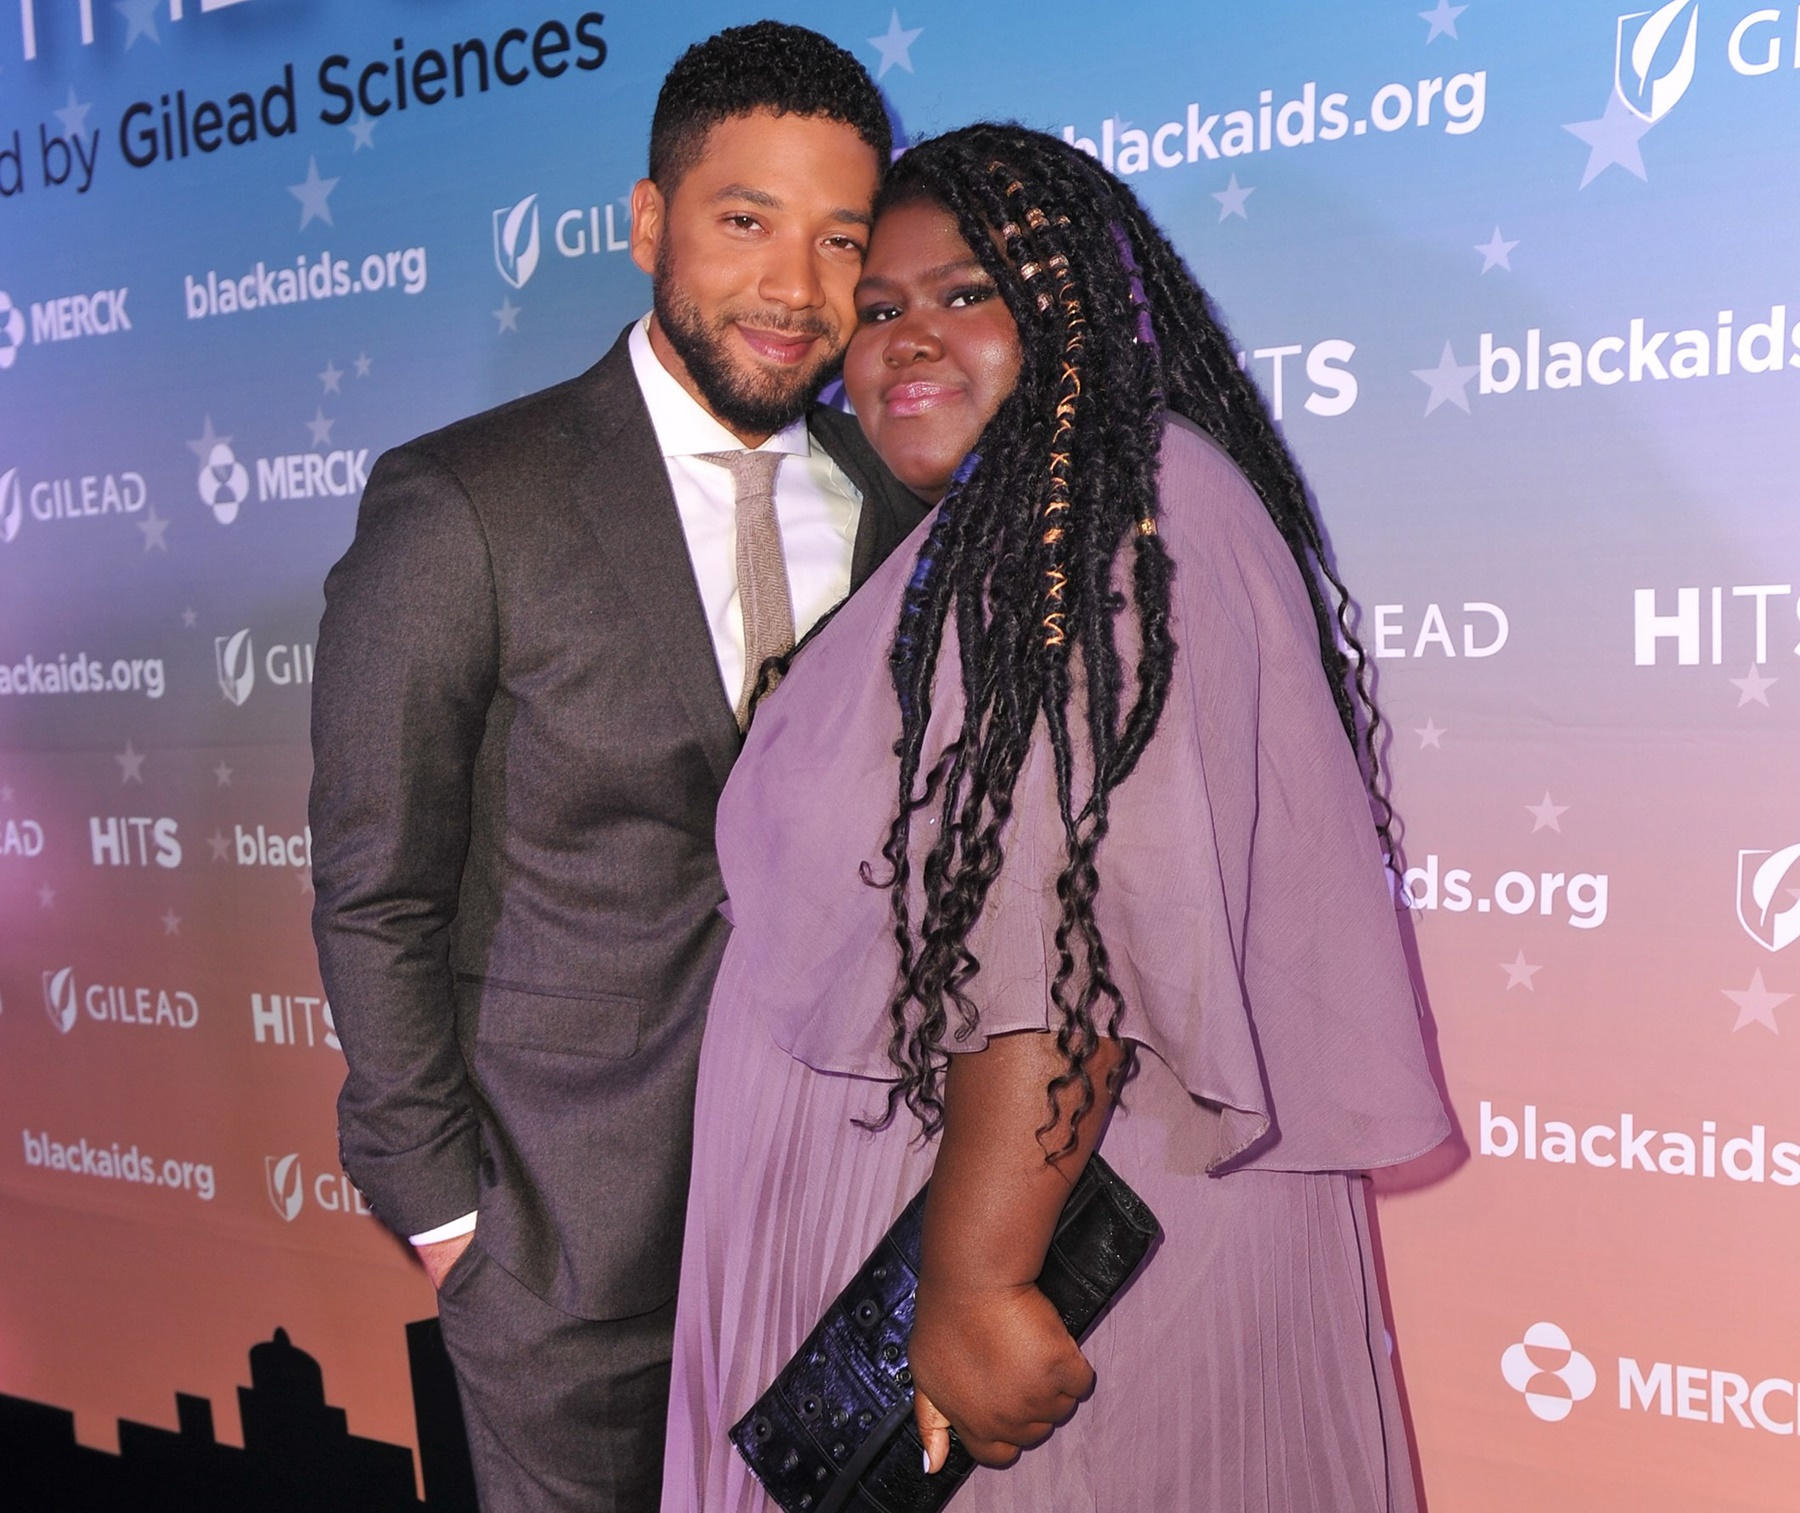 Jussie Smollett's Family Condemns Assault: 'This Was a Hate Crime'